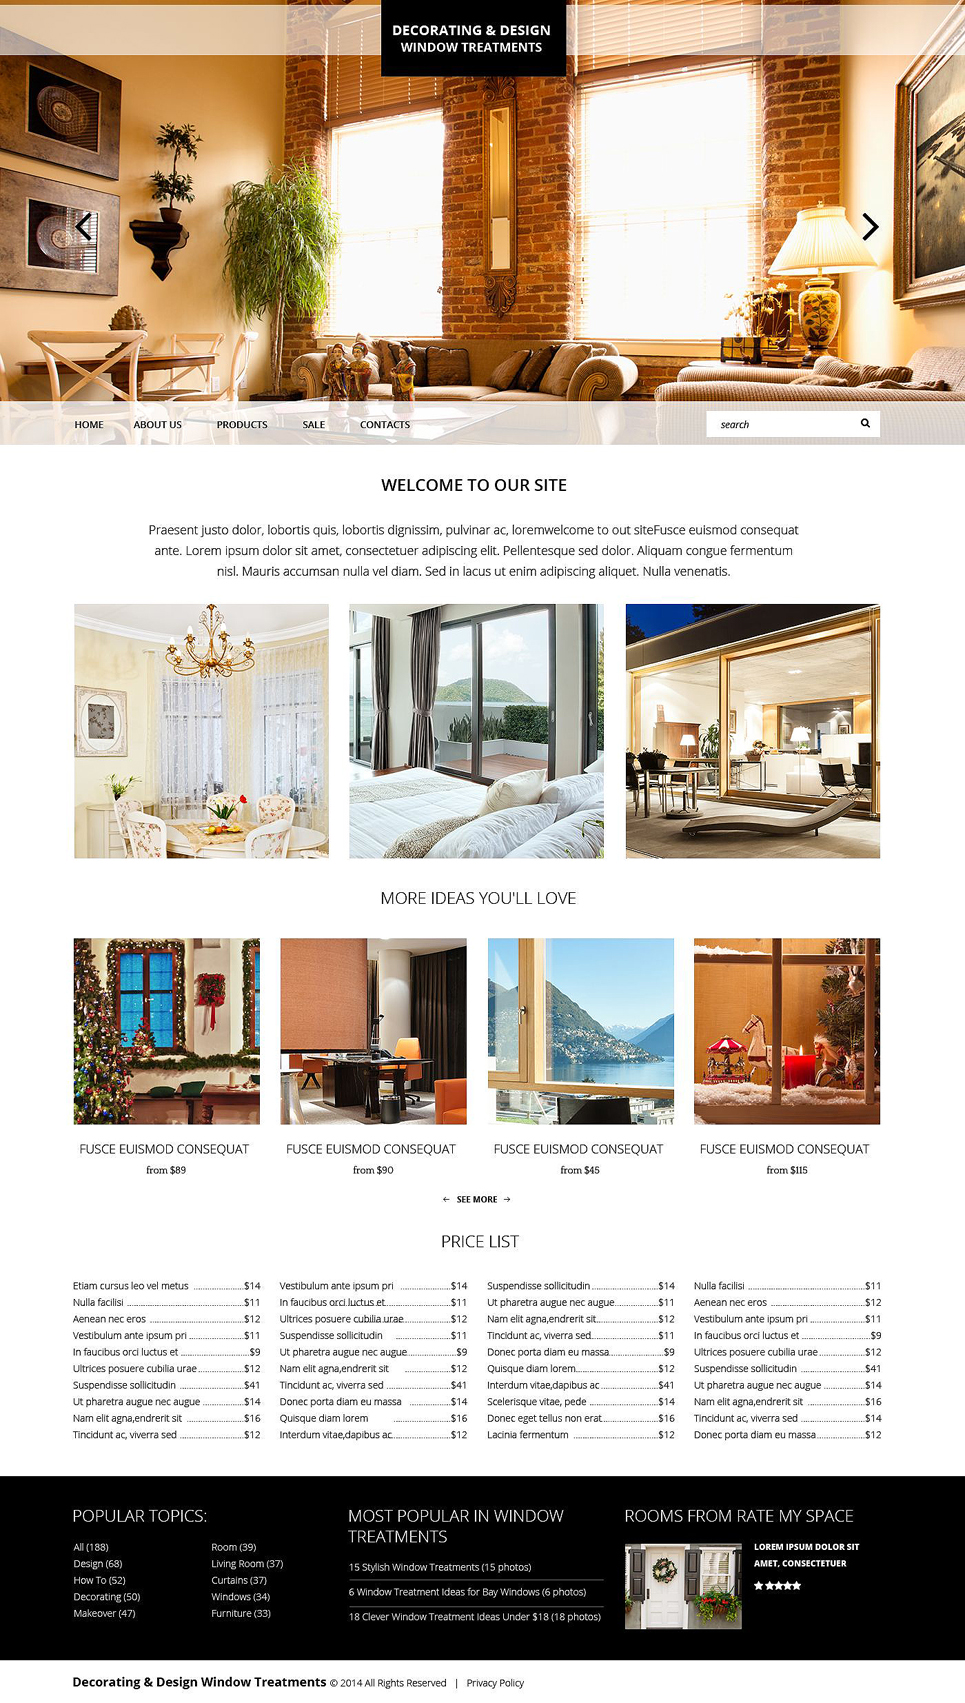 and luxury decoration ideas design home modern website room idea places decor shopping sites online for decortop top shop to